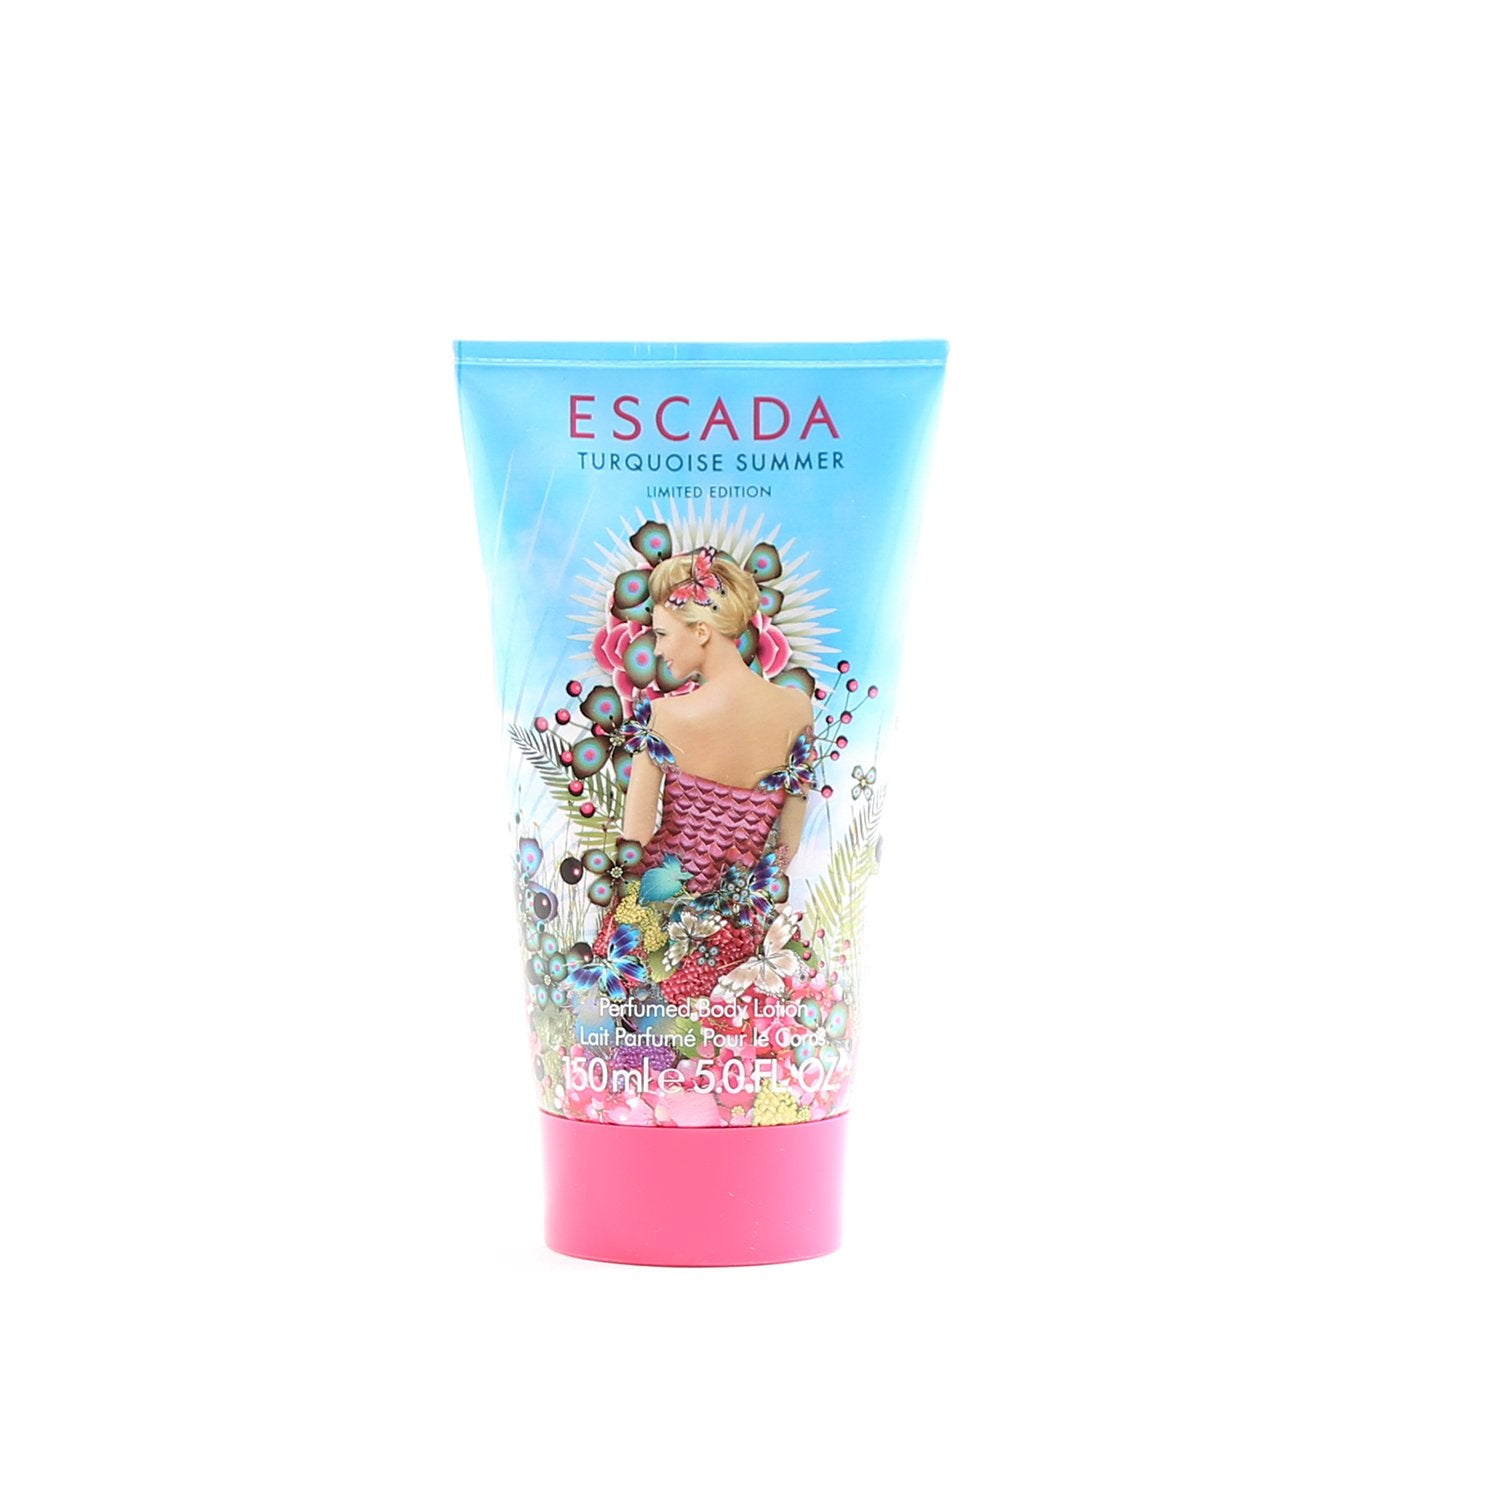 Escada Turquoise Summer For Women Body Lotion 5 Oz Fragrance Room